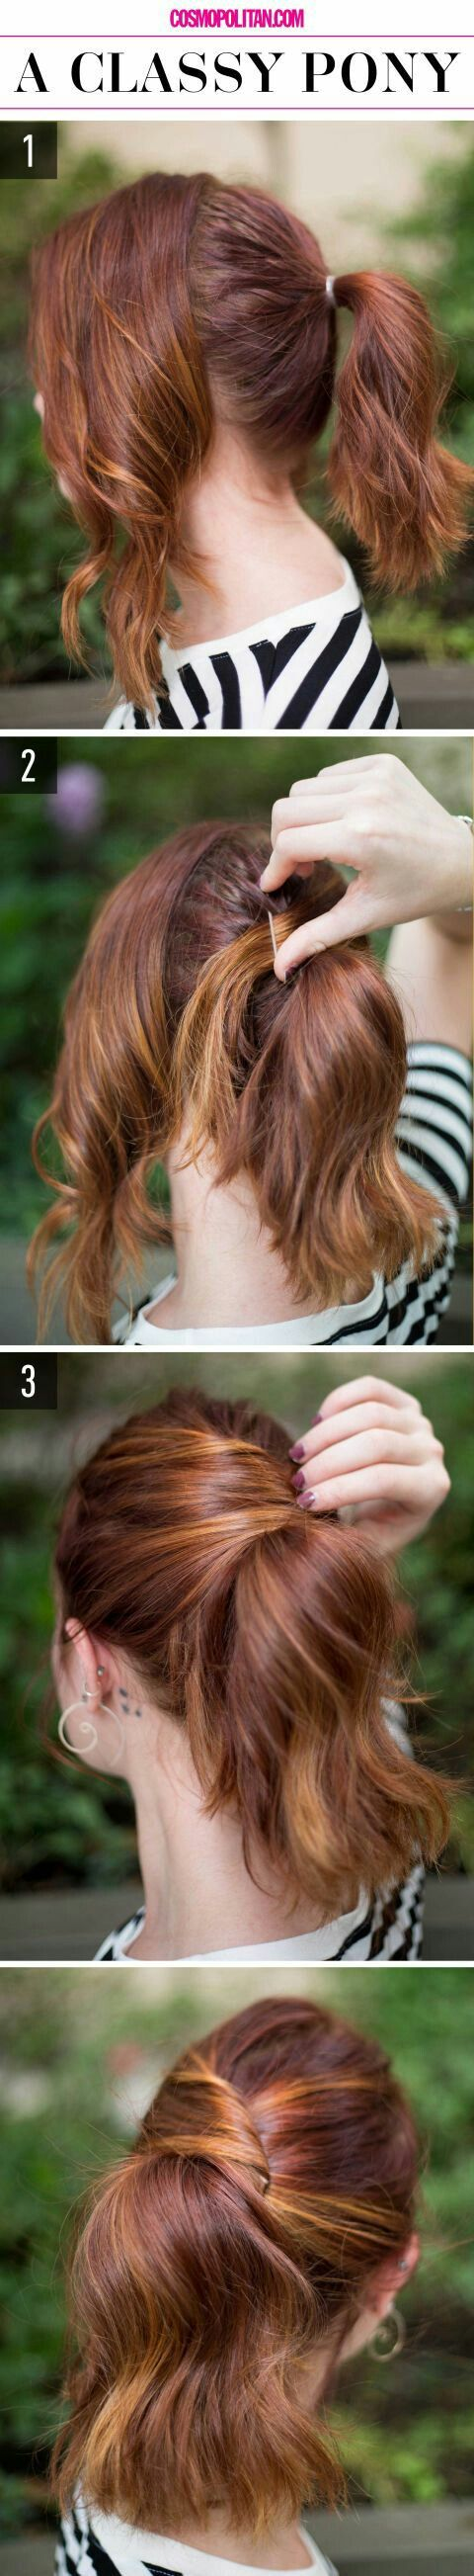 Just some hair tutorials, move along.